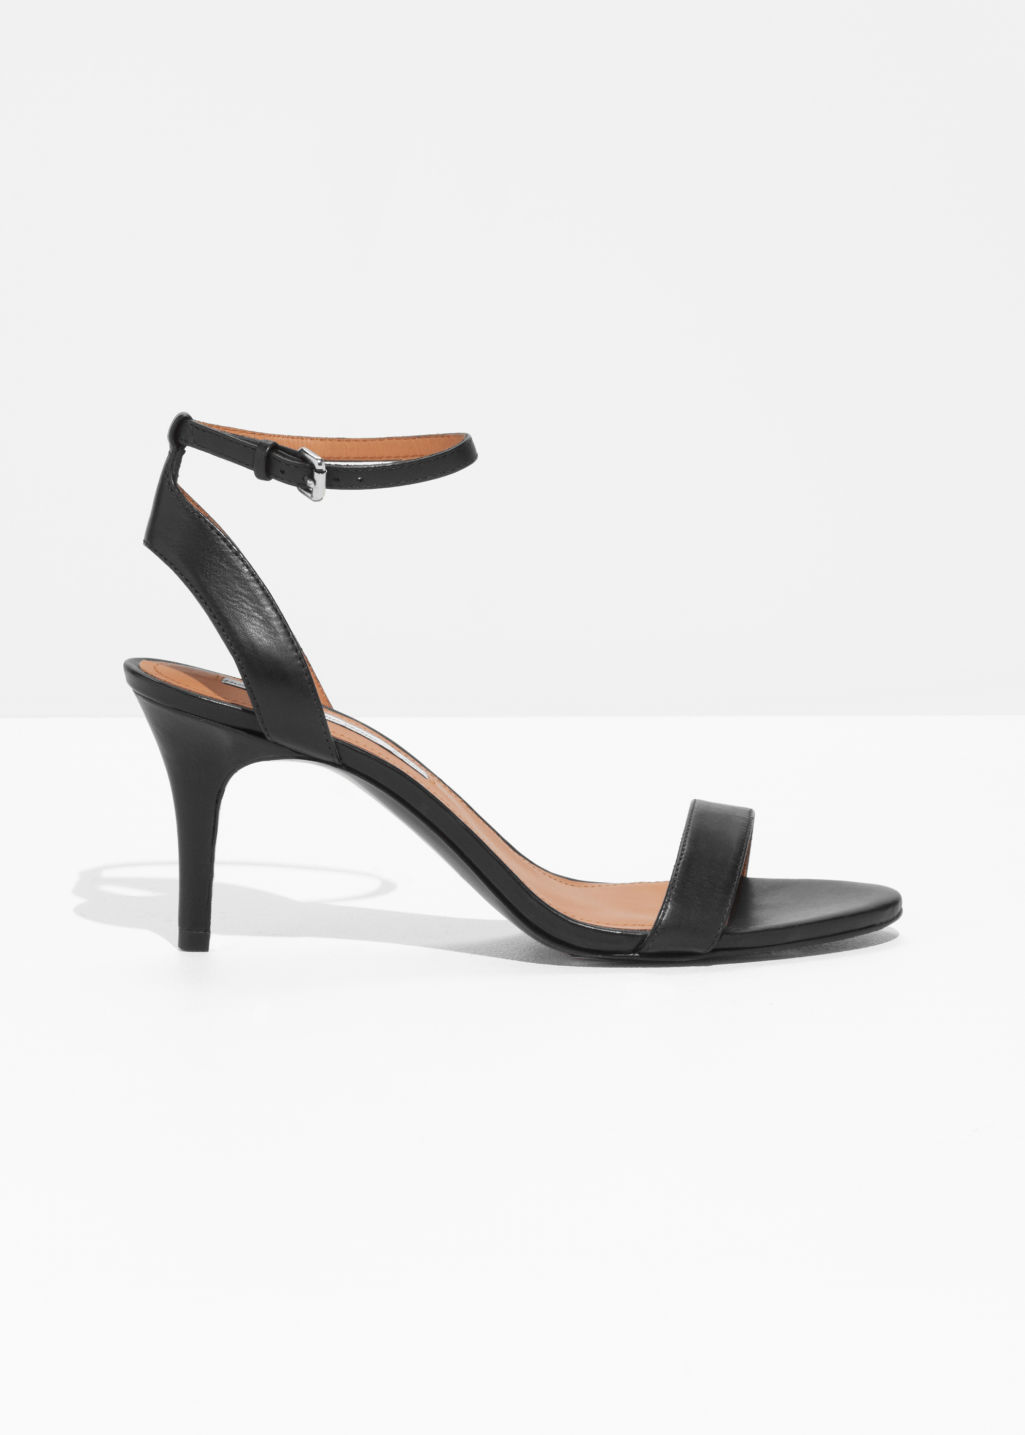 & OTHER STORIES Heel Strap Leather Sandals - Black En línea para la venta JcKD6Qh